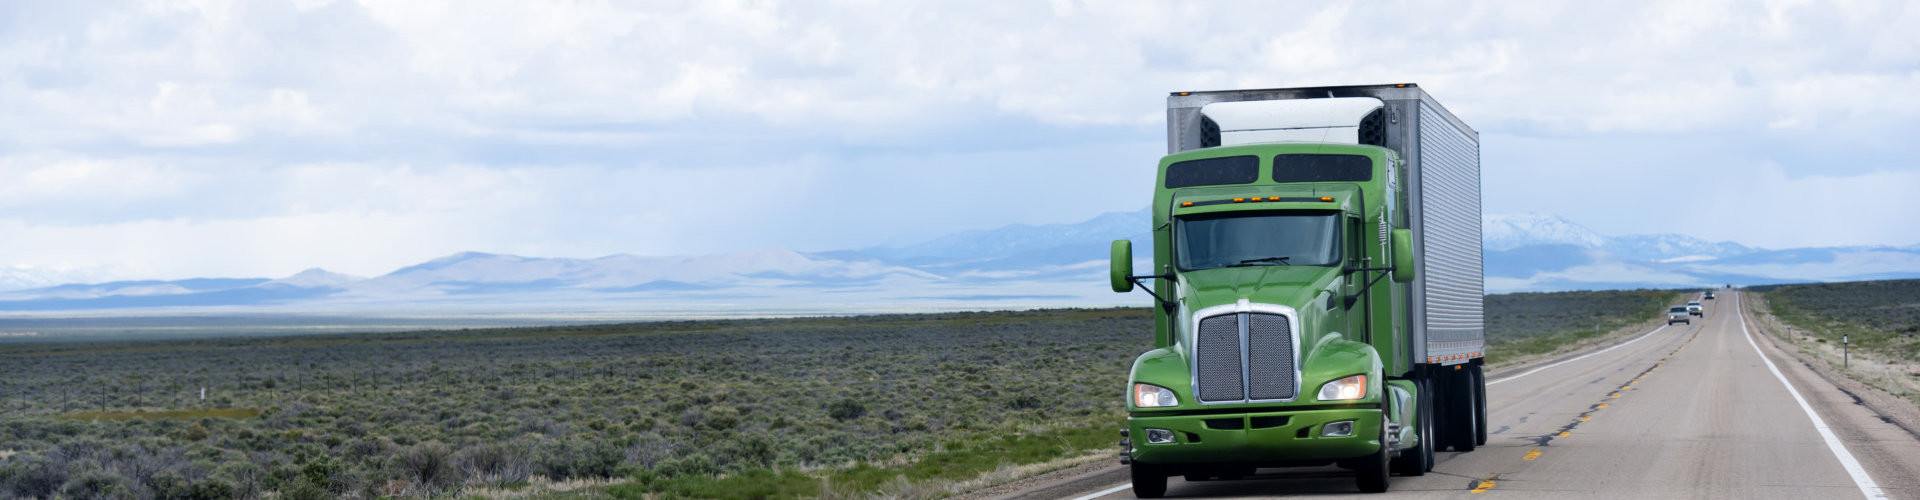 Stylish professional powerful green big rig semi truck with a trailer and refrigeration unit transporting perishable foods loads on a flat as an arrow road in hot Nevada desert. Photo Taken On: April 29th, 2016